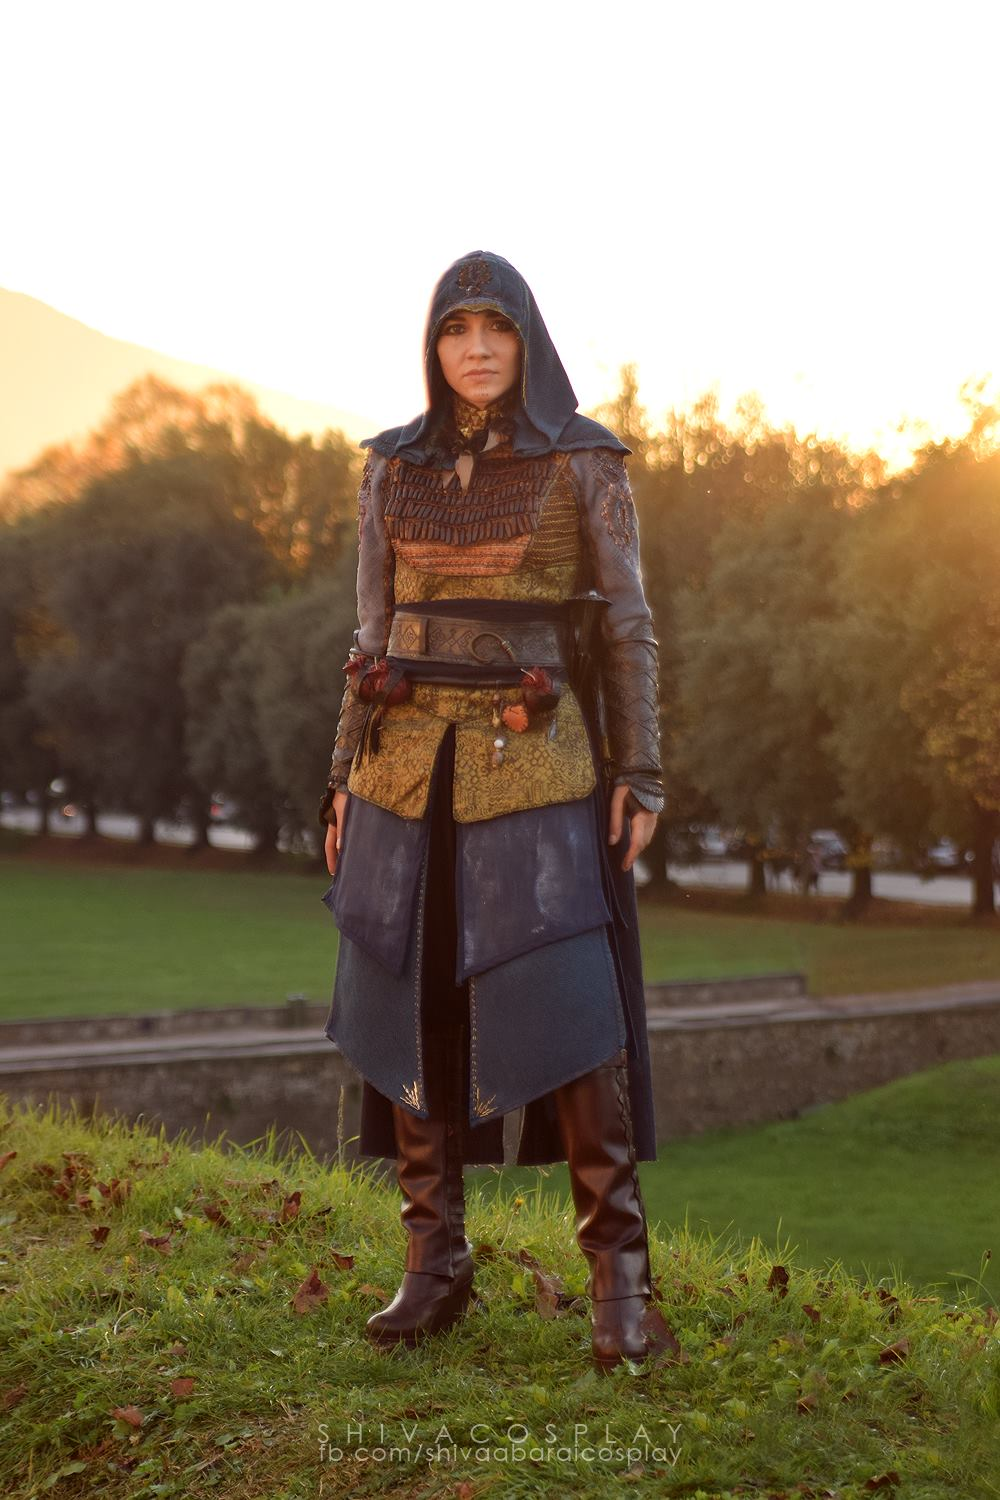 The Assassin's Creed Cosplay